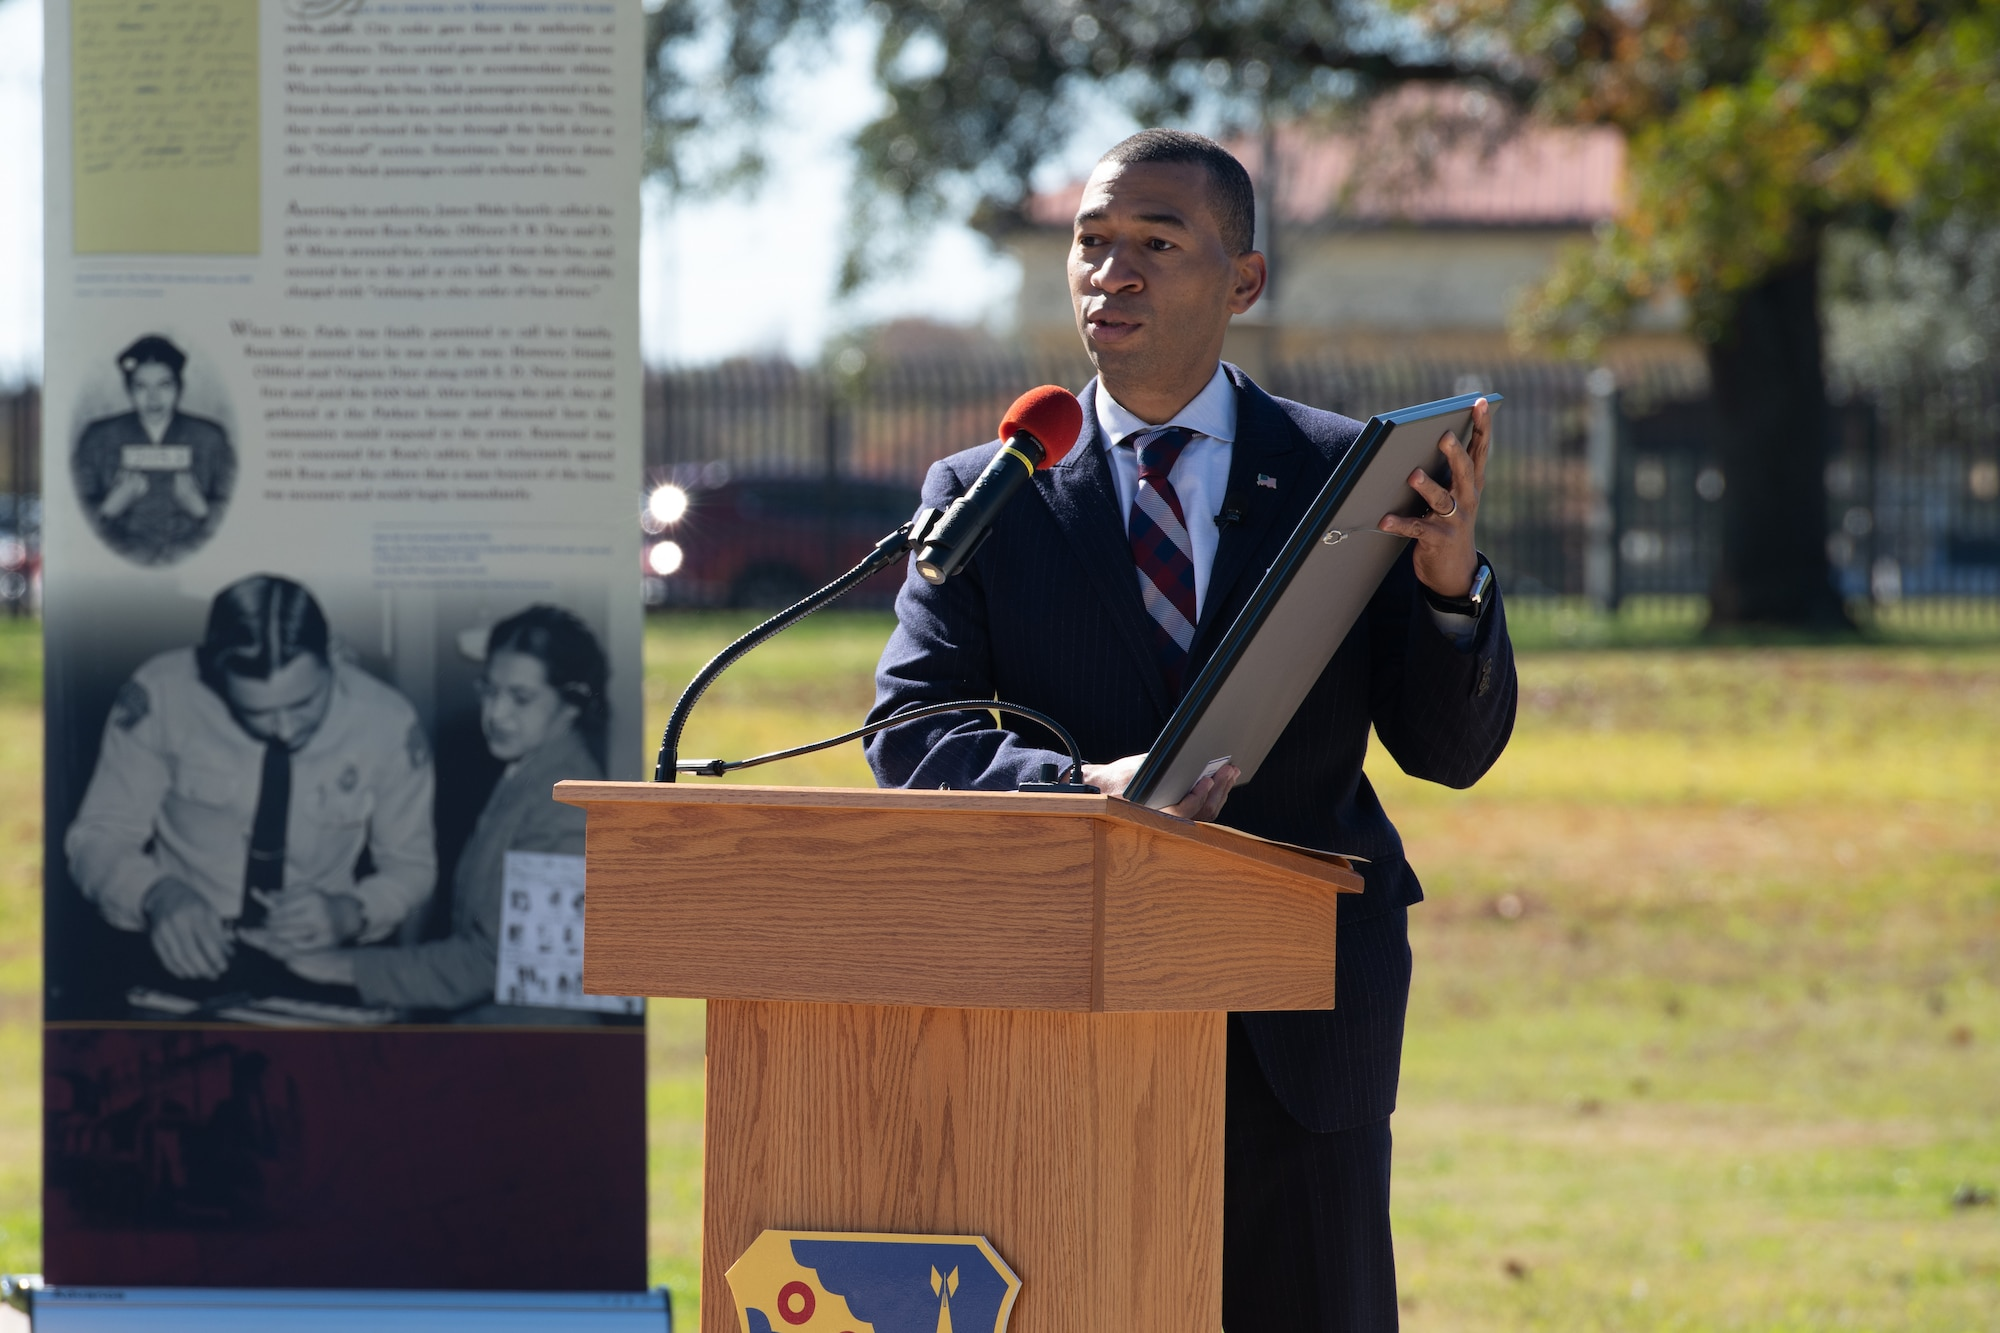 The Mayor of Montgomery Steven Reed speaks during a memorialization ceremony in honor of Rosa Parks on the 65th Anniversary of her refusal to give up her seat on a Montgomery Bus Dec. 1, 2020, on Maxwell Air Force Base, Alabama. A few of the other distinguished visitors in attendance were the Secretary of the Air Force Barbara Barrett, Bryan Stevenson, Equal Justice Initiative director and Lt. Gen. Brad Webb, Air Education and Training Command commander, who watched the event via live stream. (U.S. Air Force photo by Senior Airman Charles Welty)